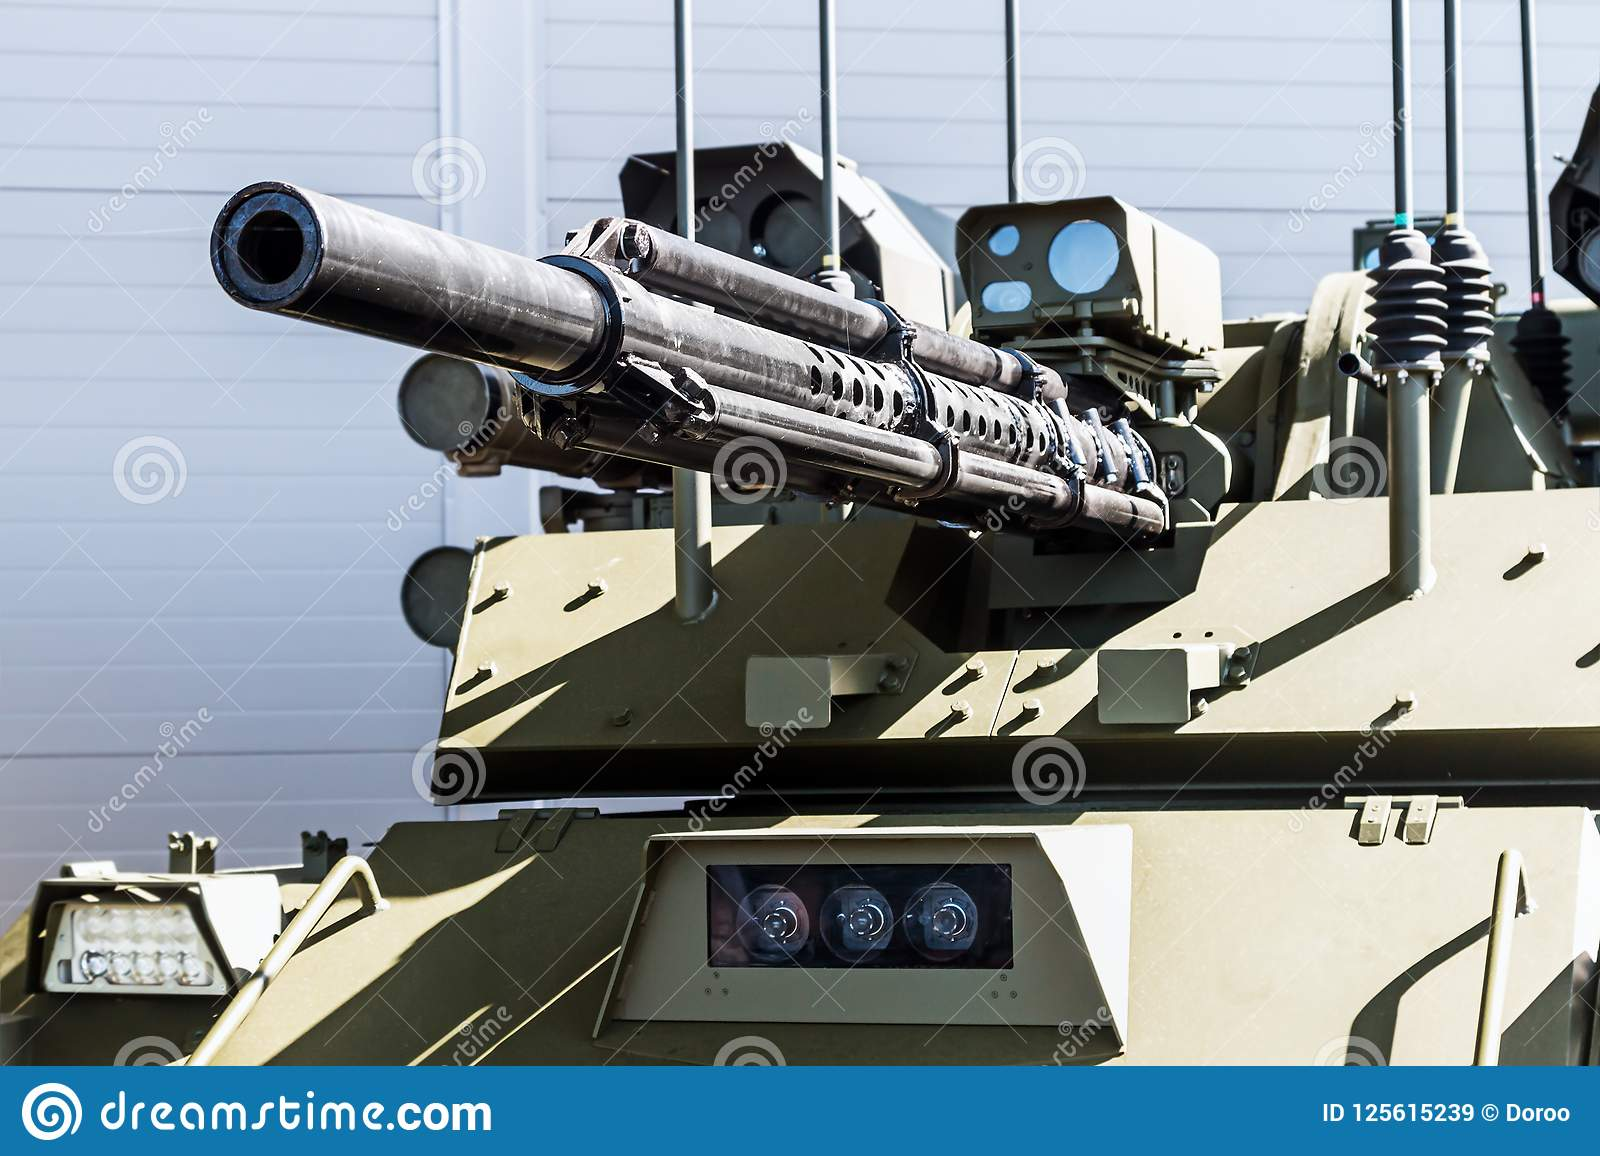 Samples Of Modern Weapons And Armaments At The International